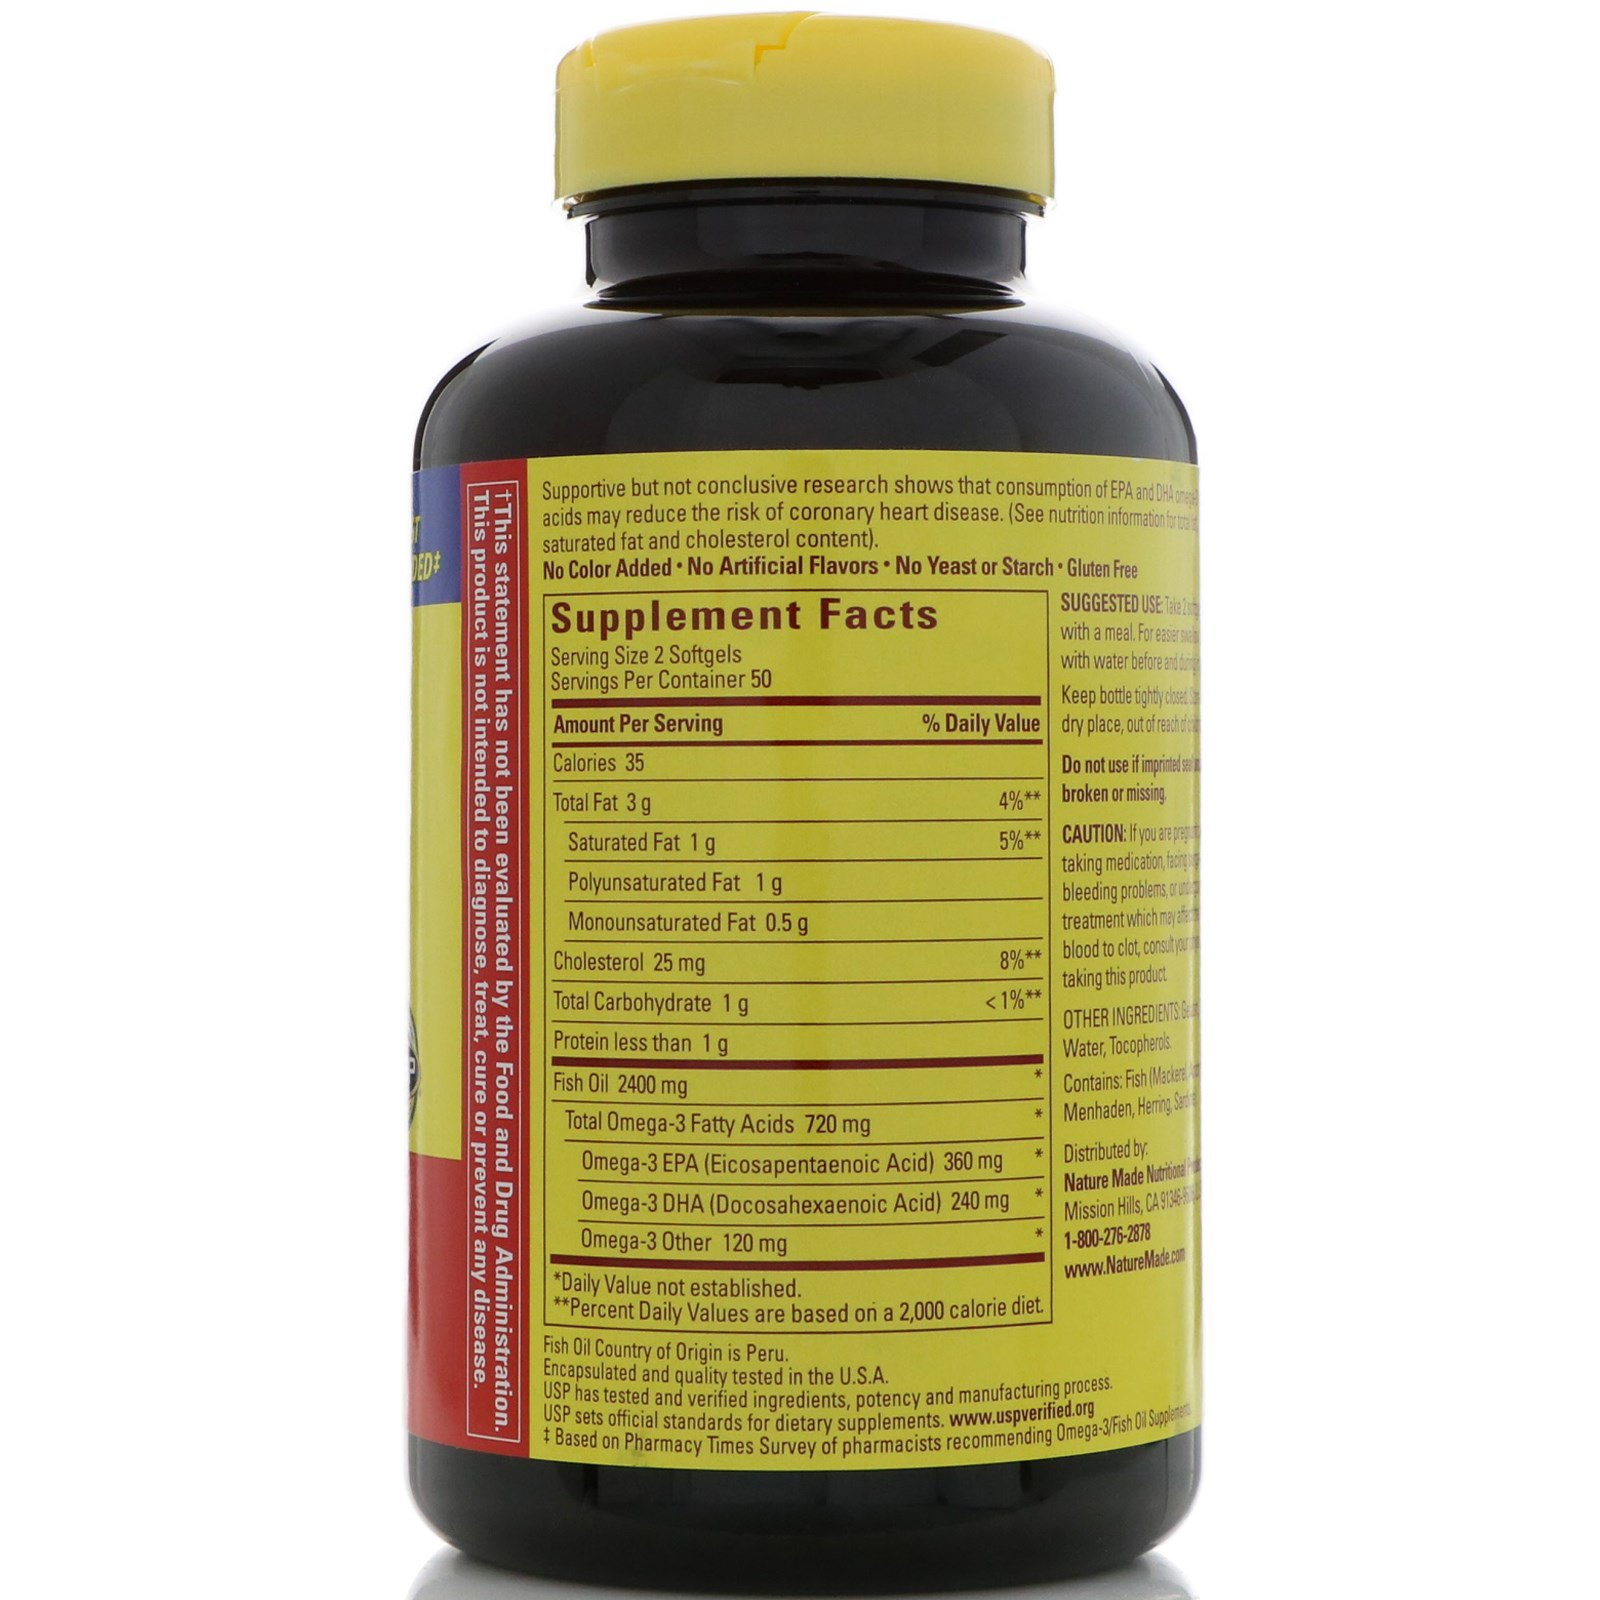 Nature made fish oil 1200 mg 100 softgels for Nature made fish oil